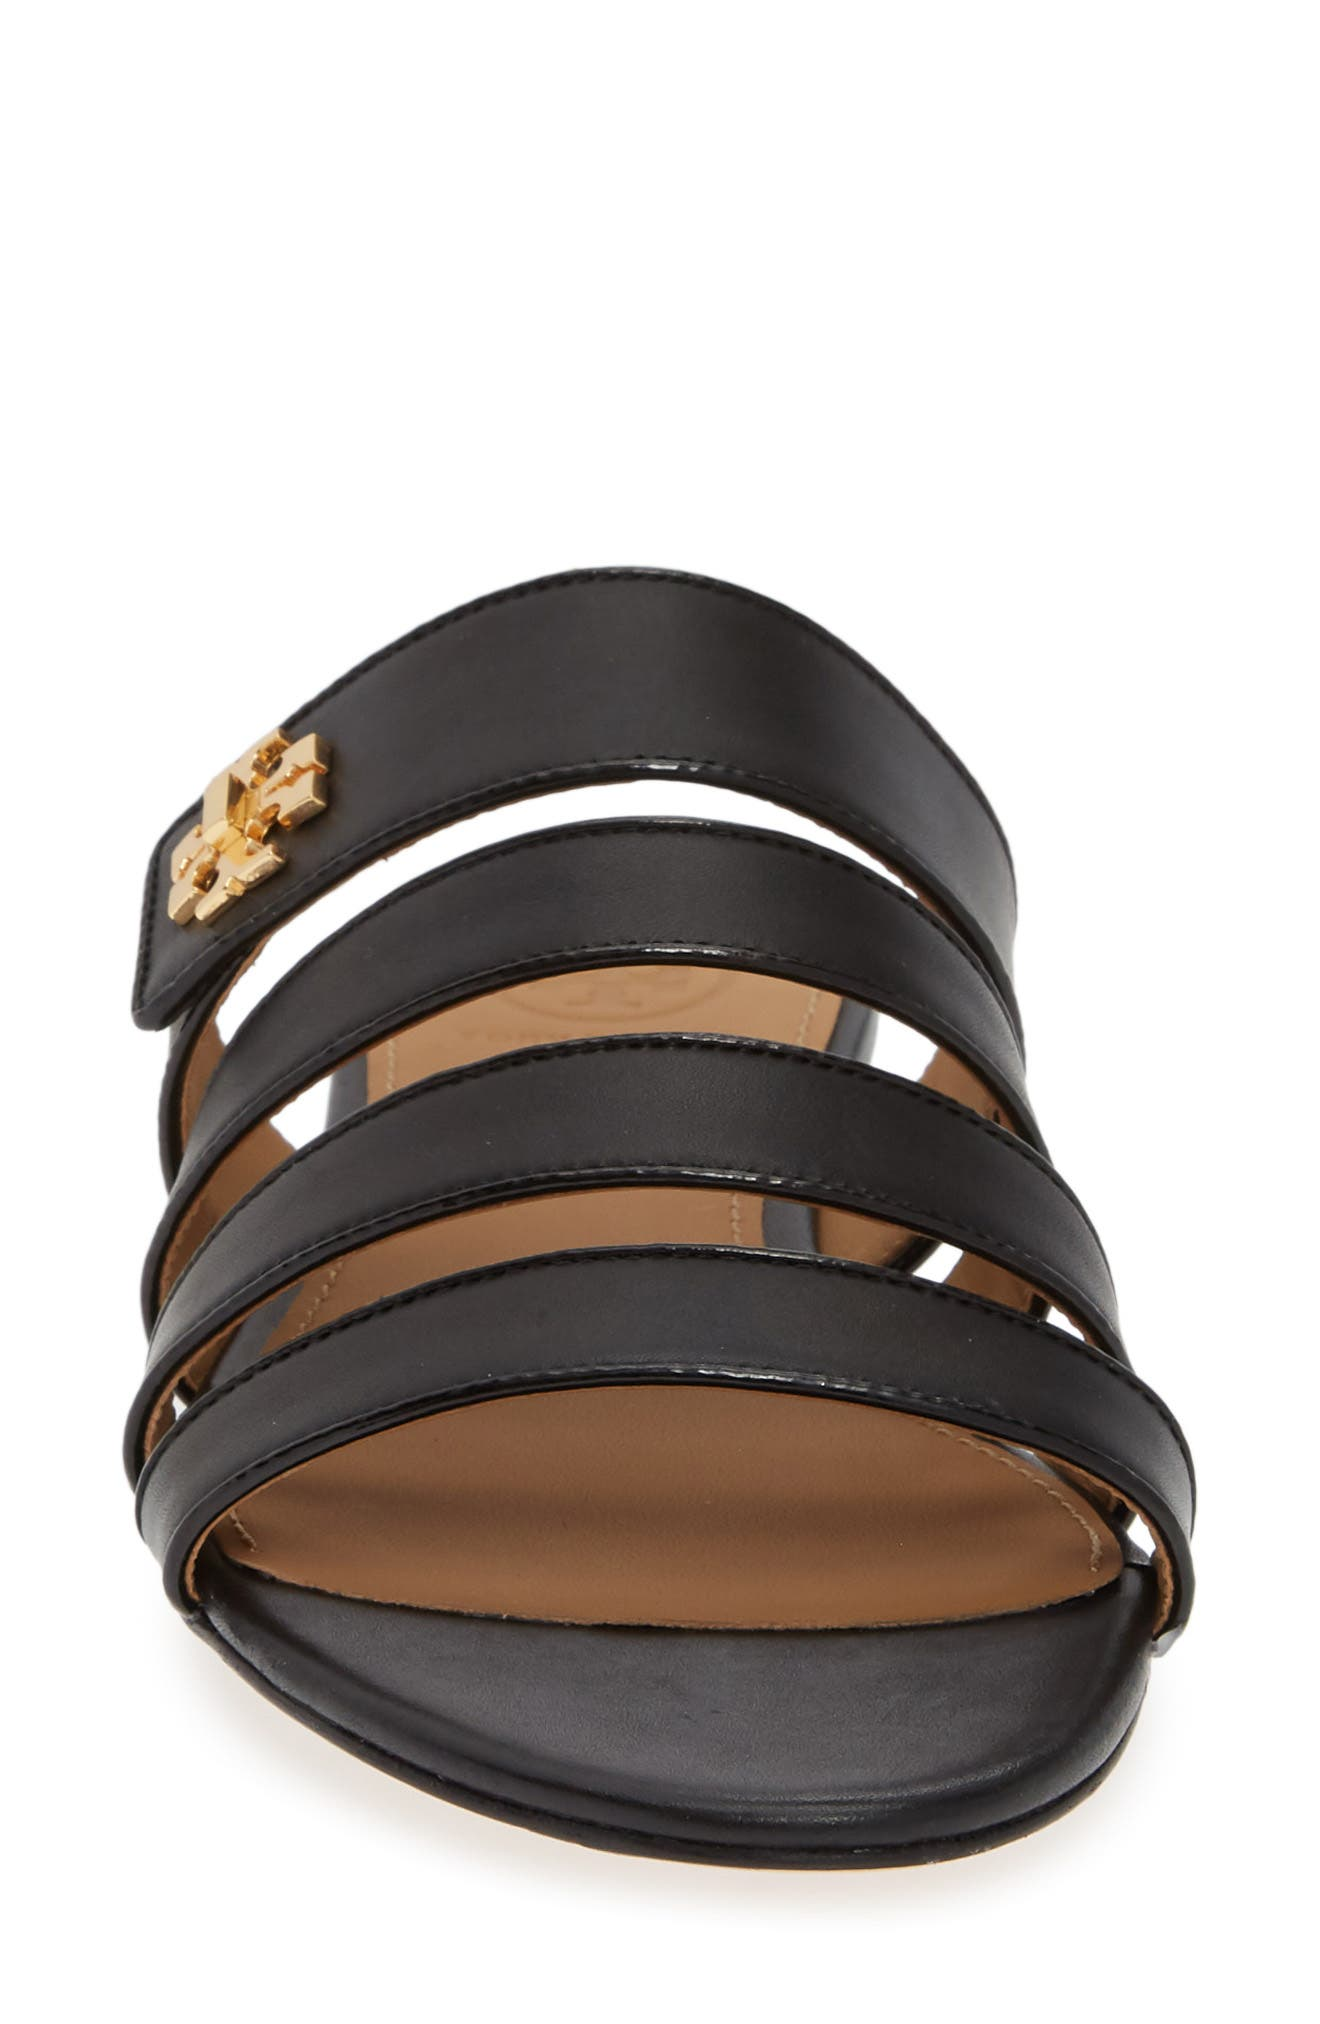 TORY BURCH,                             Kira Strappy Slide Sandal,                             Alternate thumbnail 4, color,                             PERFECT BLACK/ PERFECT BLACK